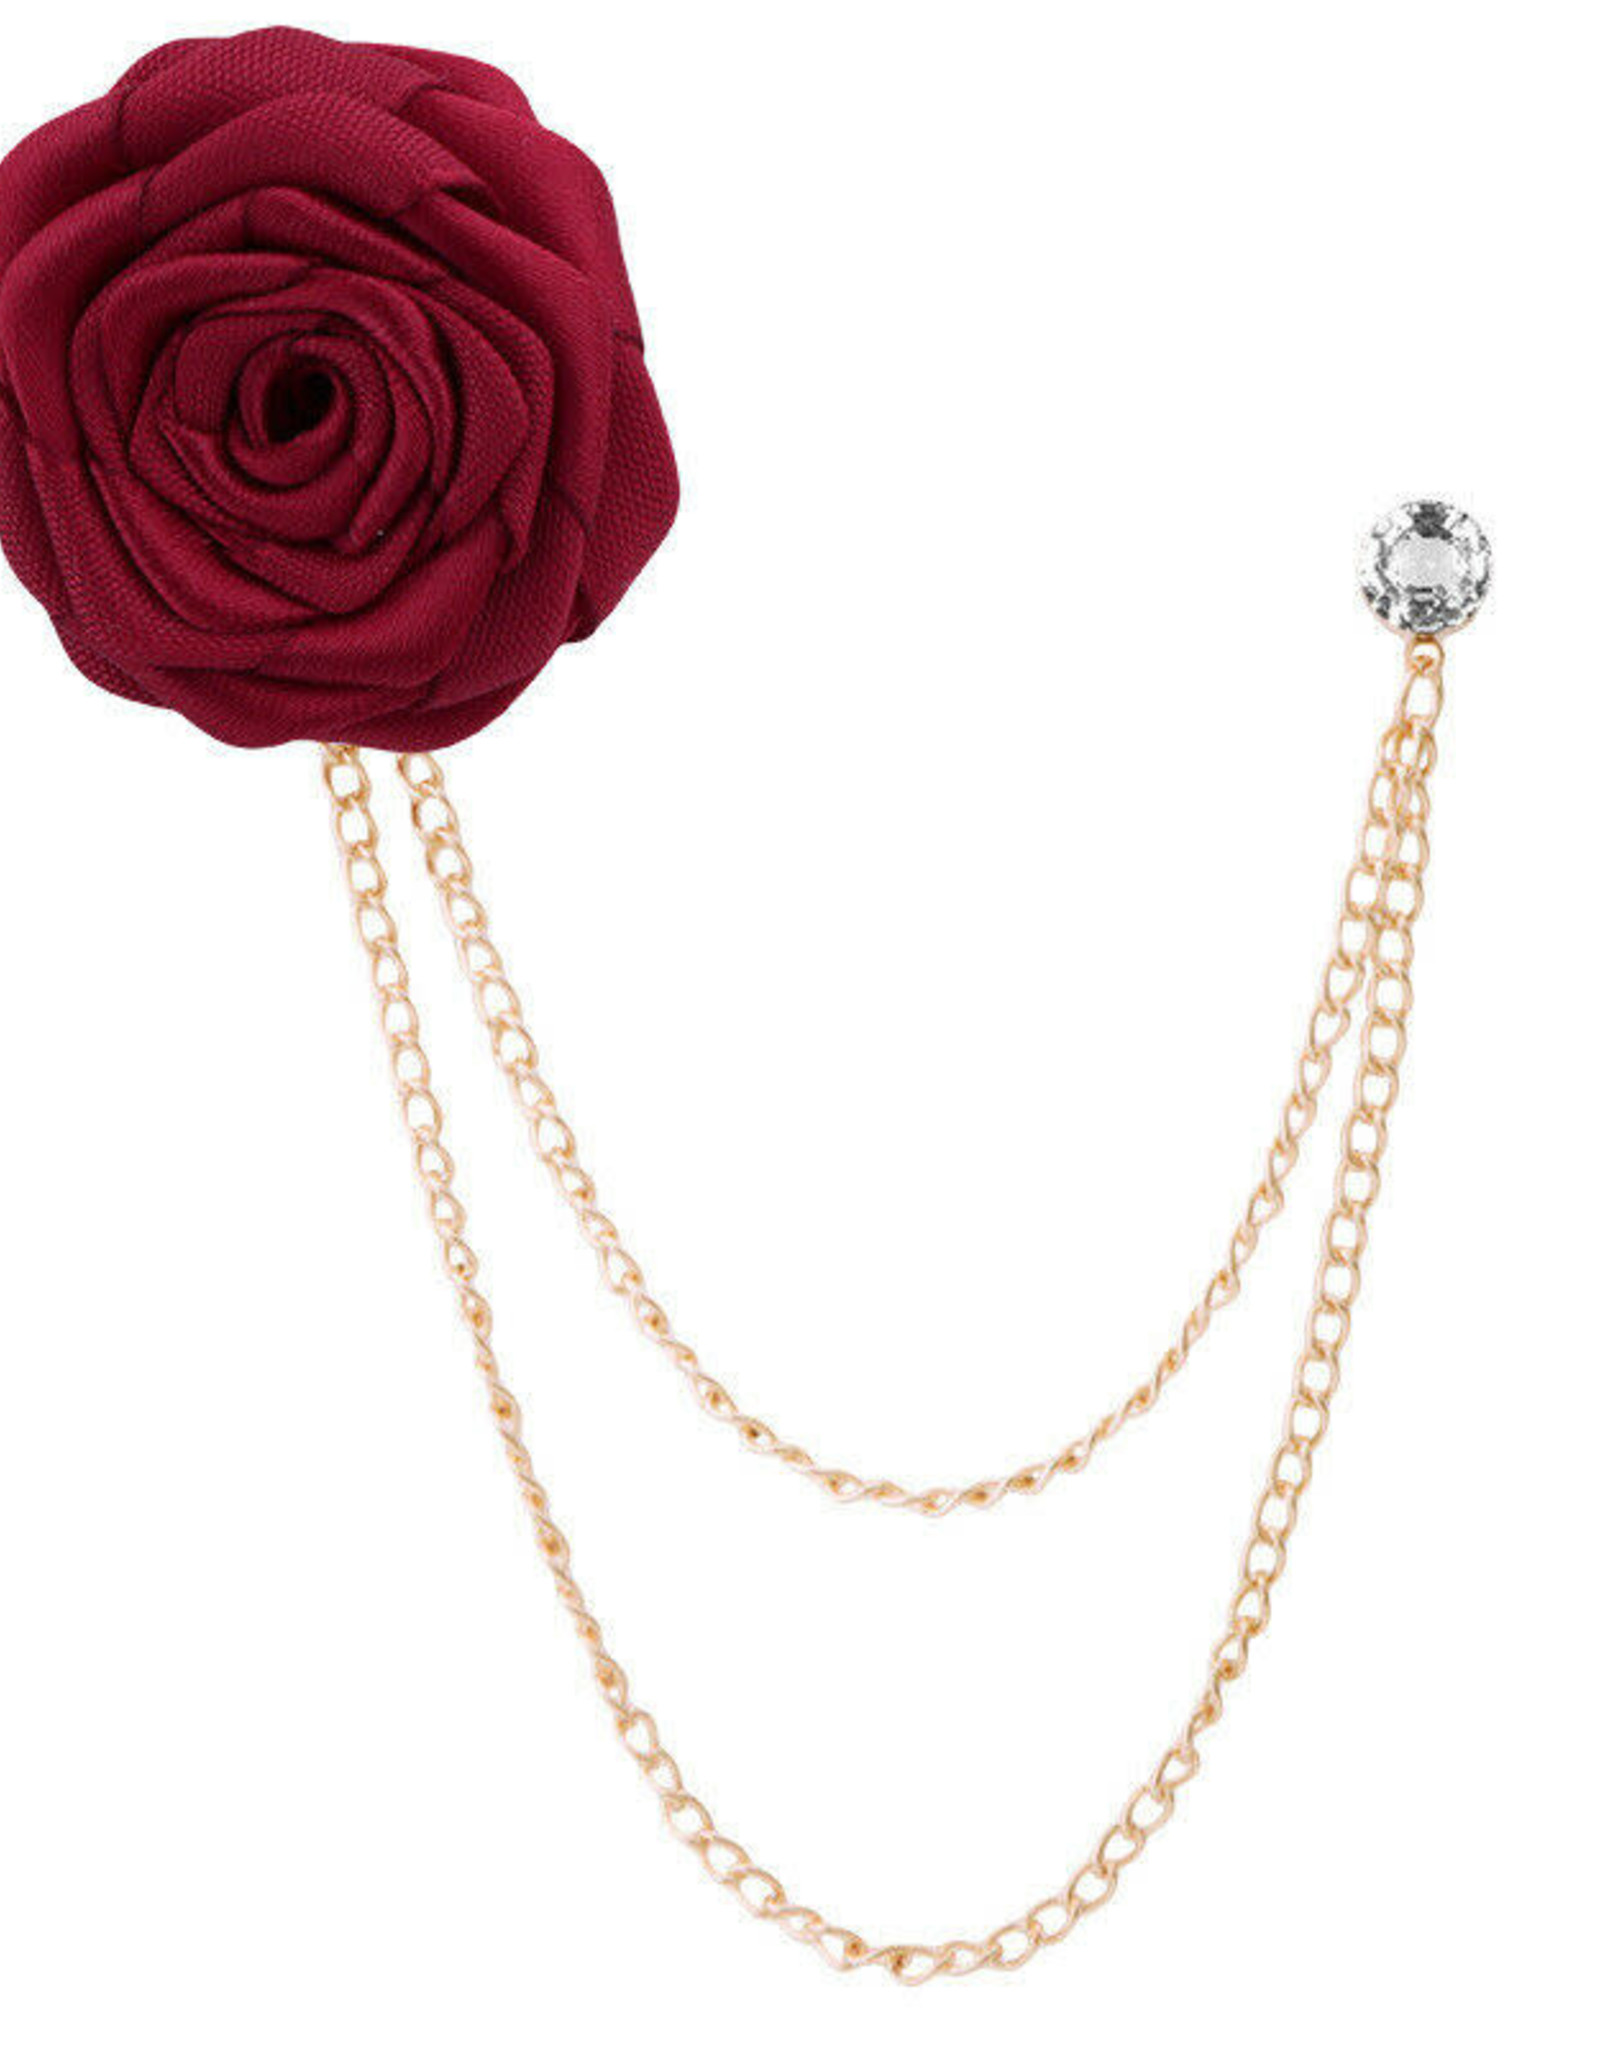 Lapel Pin Rose with Double Chain & Dimond Pin